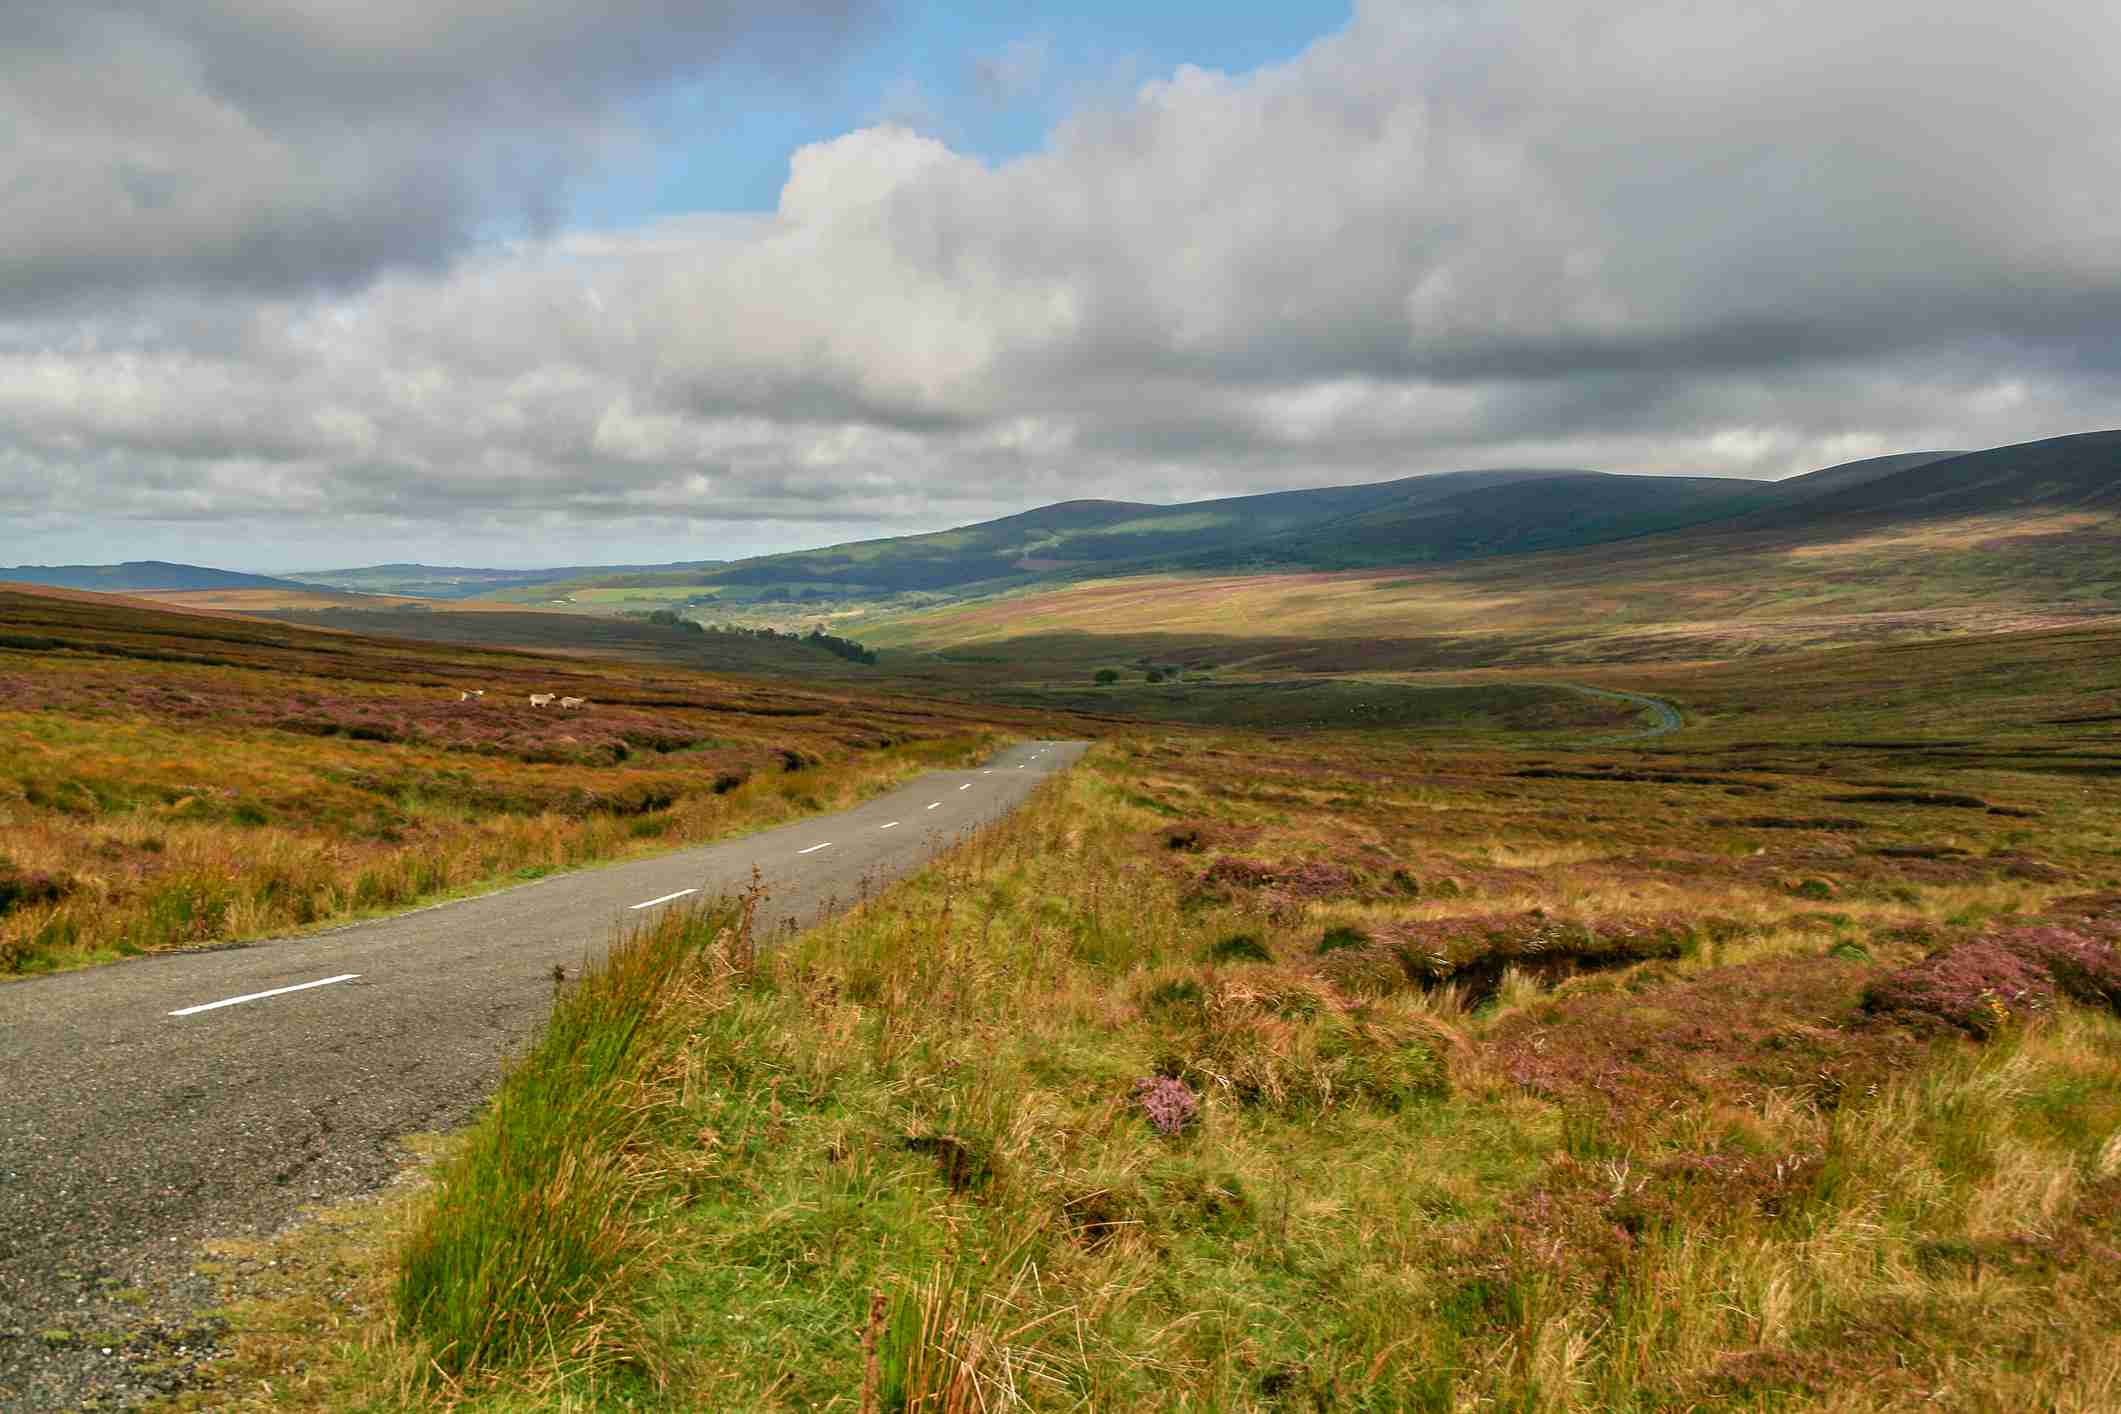 Wicklow Mountain Landscape View down a road